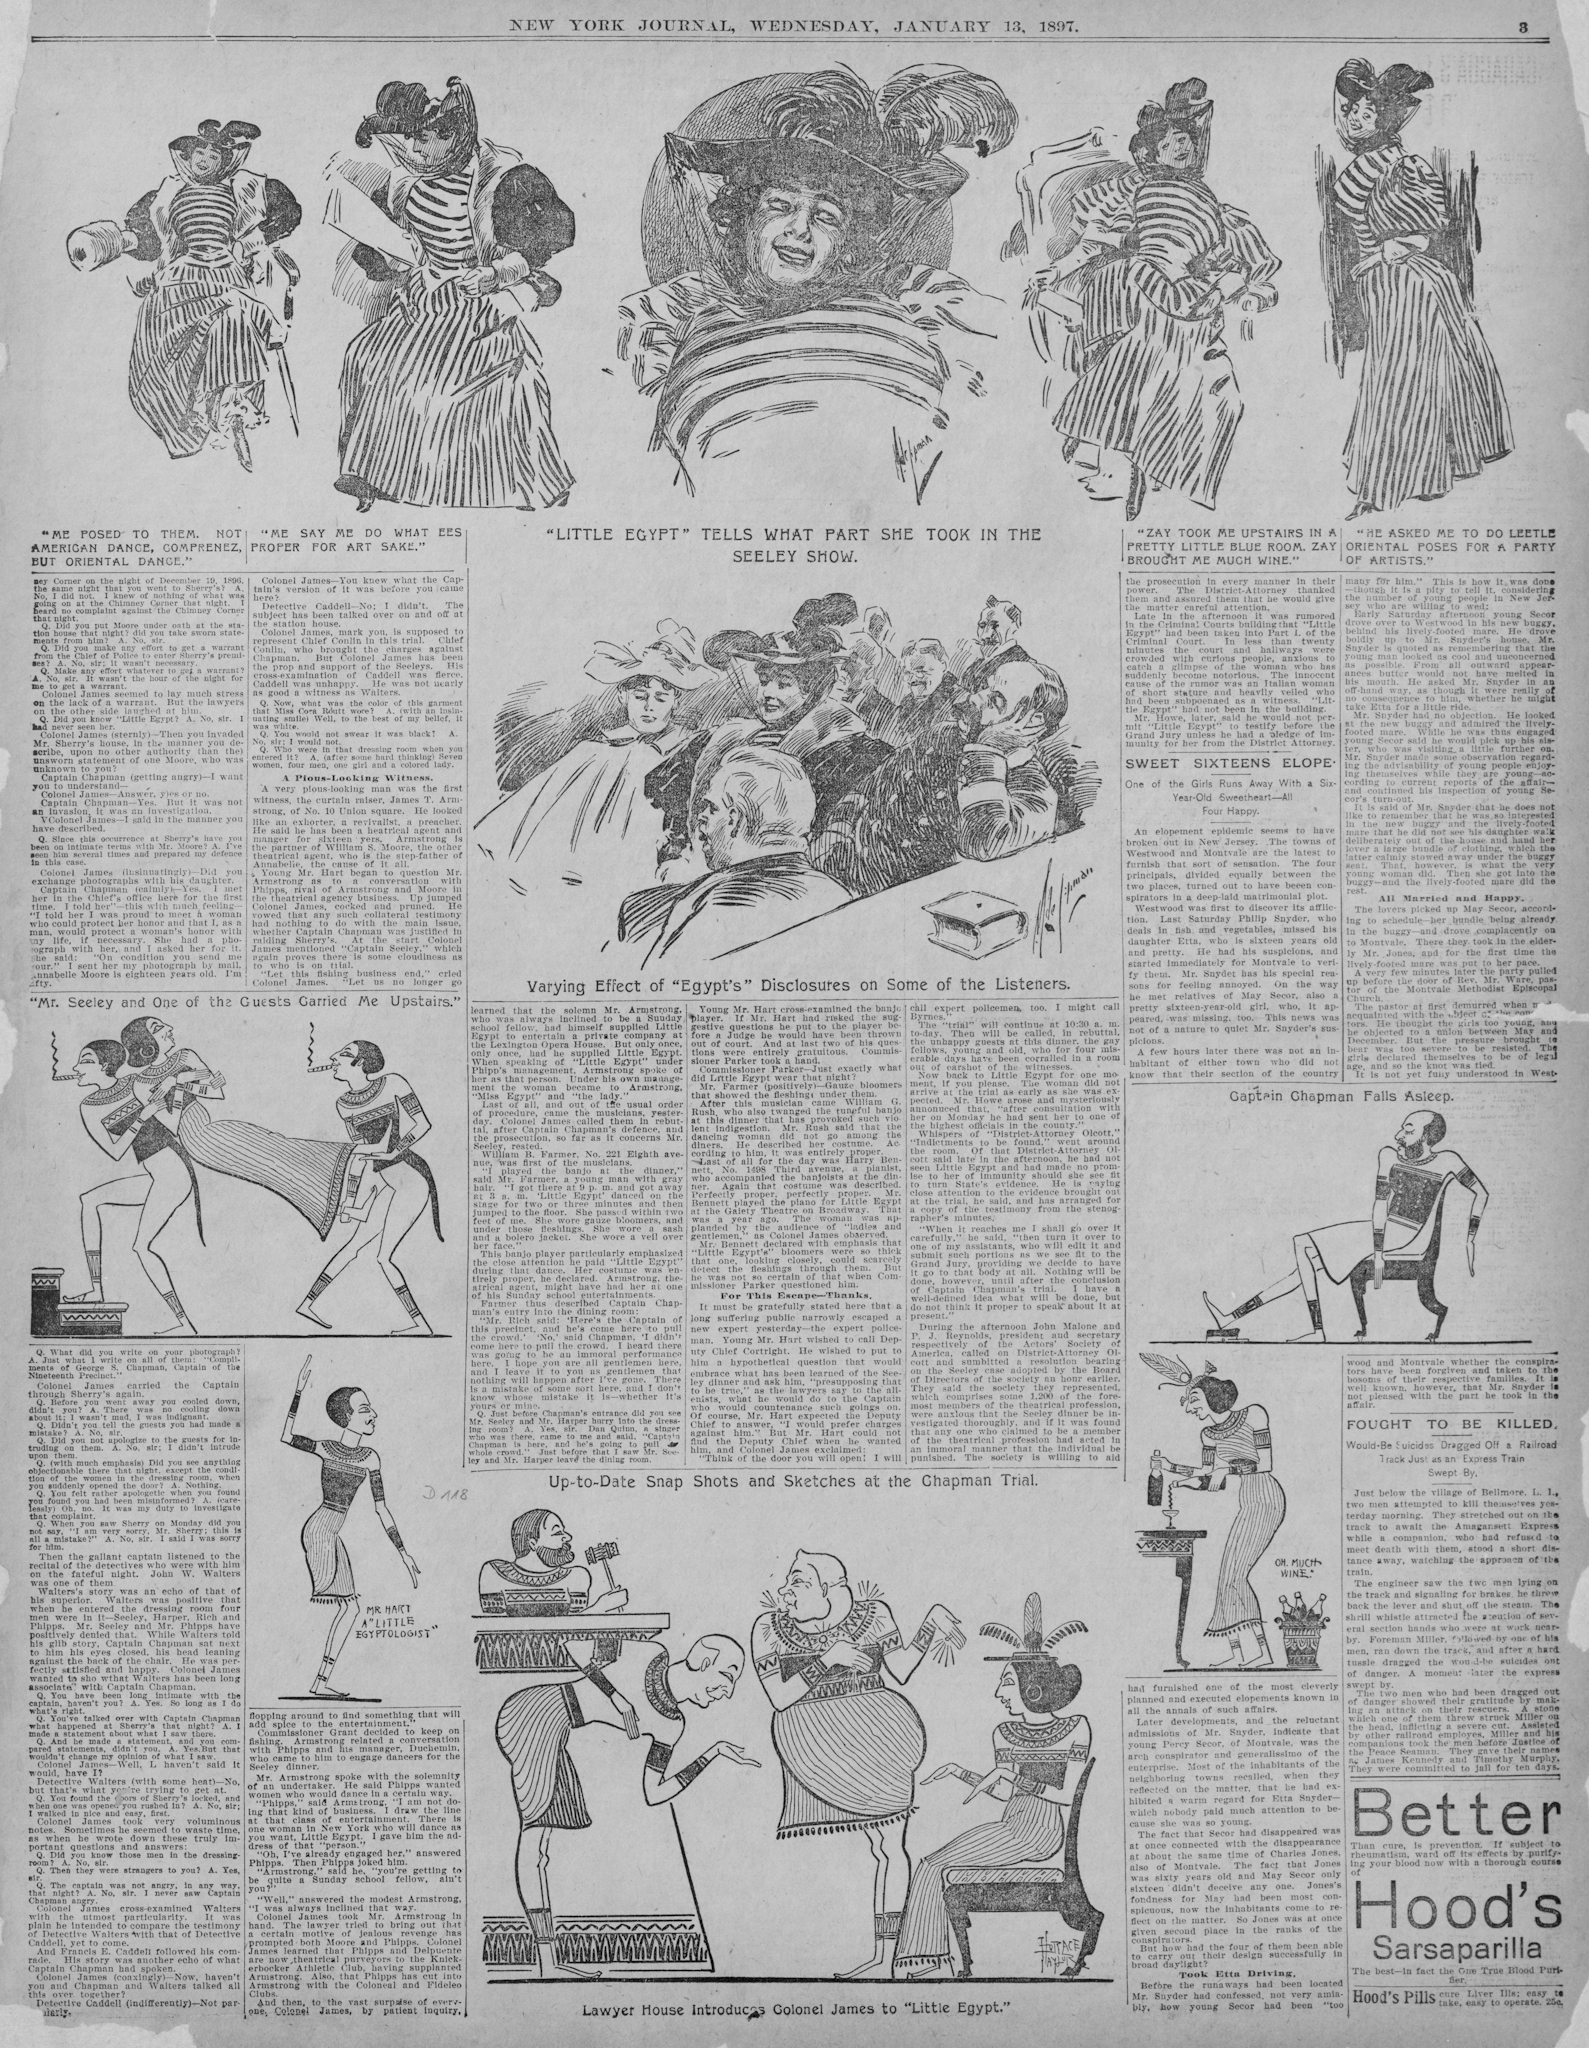 Descriptions and sketches of Little Egypt were published in the New York Journal during the Seely dinner trial. Little Egypt is the woman wearing the striped dress. (Scan courtesy of the Library of Congress.)